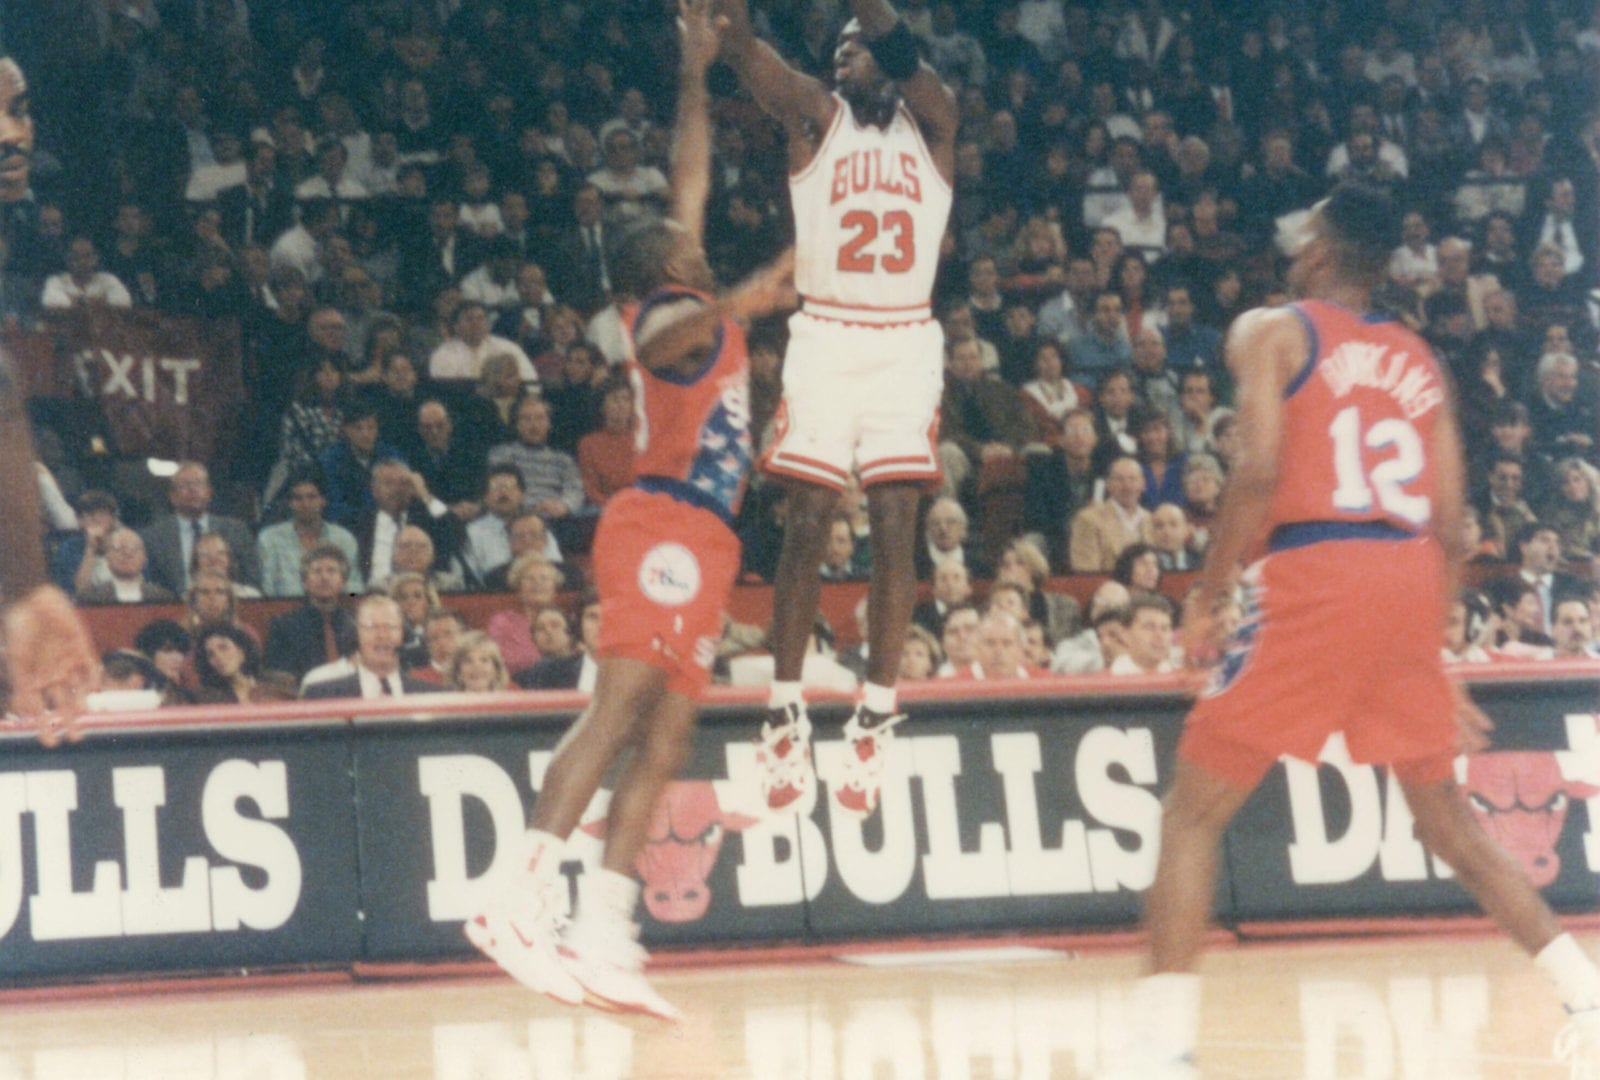 A high jump from MJ